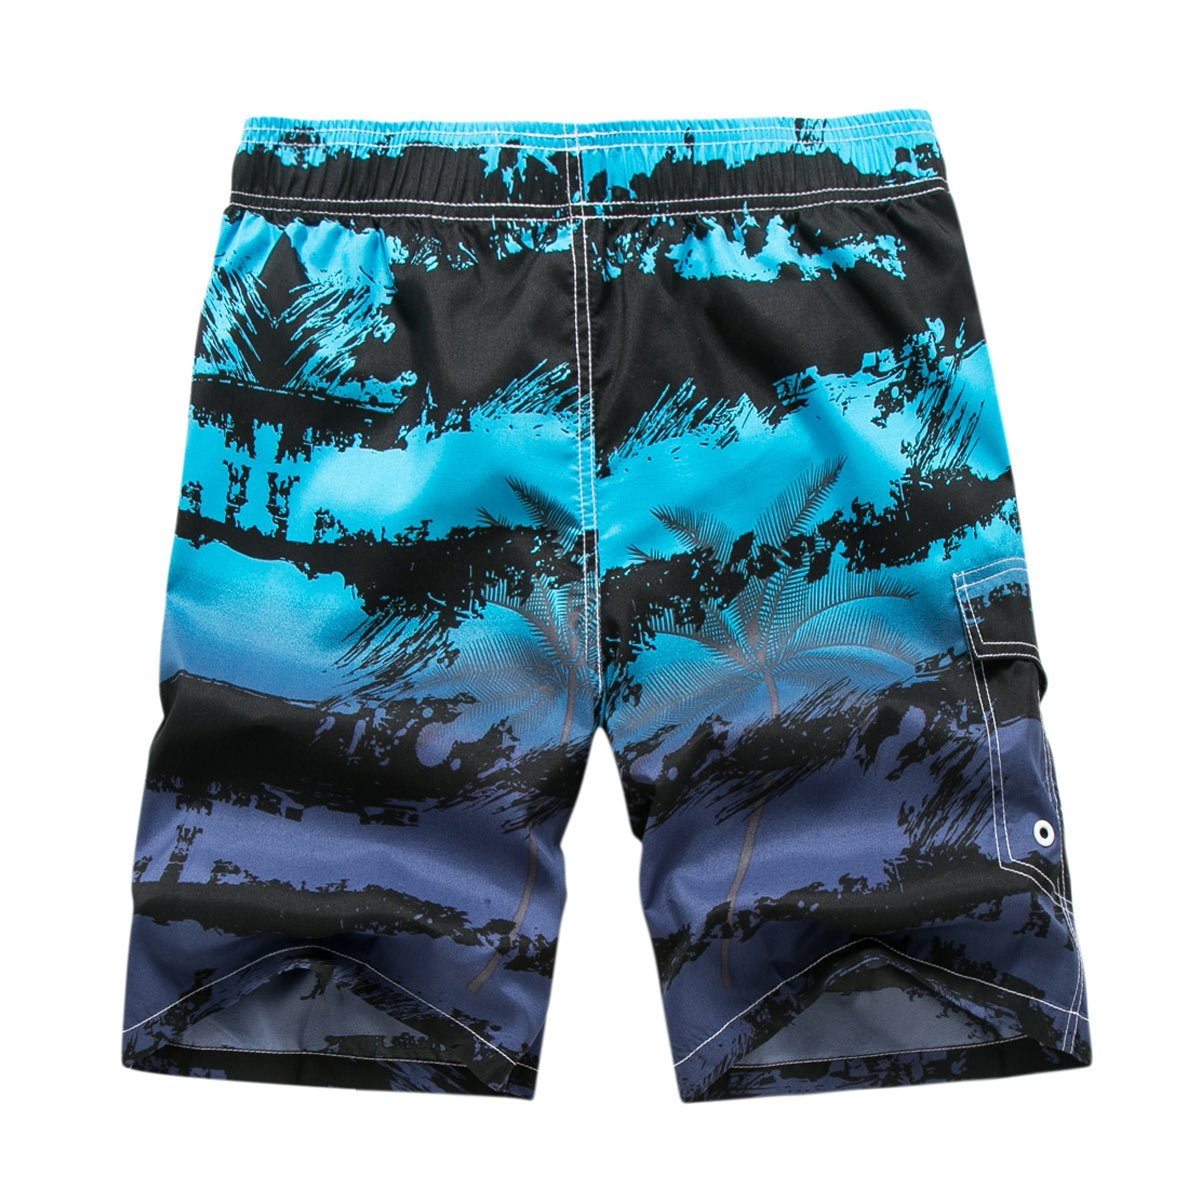 Tailor Pal Love Men Tropical Swim Trunks Printed Quick Dry Board Shorts Mesh Lining Breathable Beach Trunks 3XL Blue by Tailor Pal Love (Image #2)